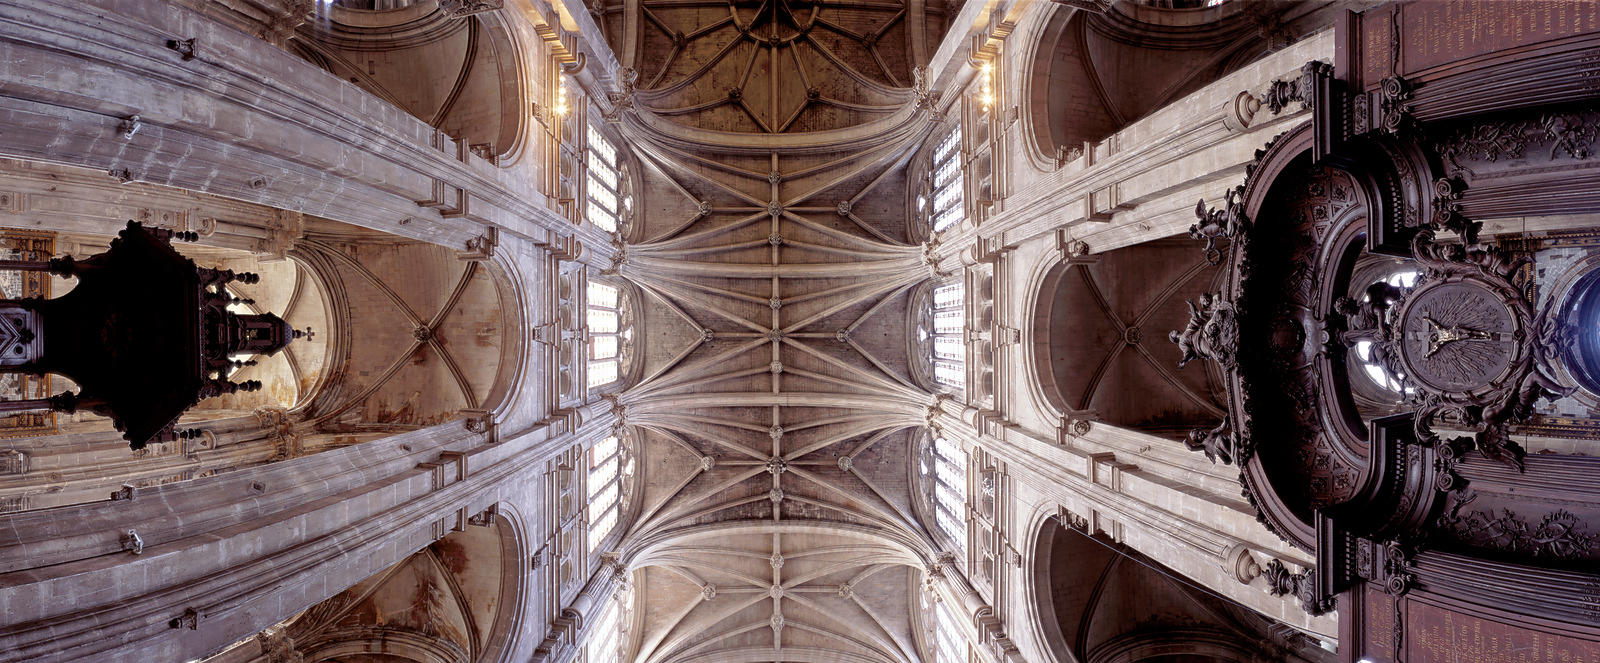 Saint Eustache church vault, Paris